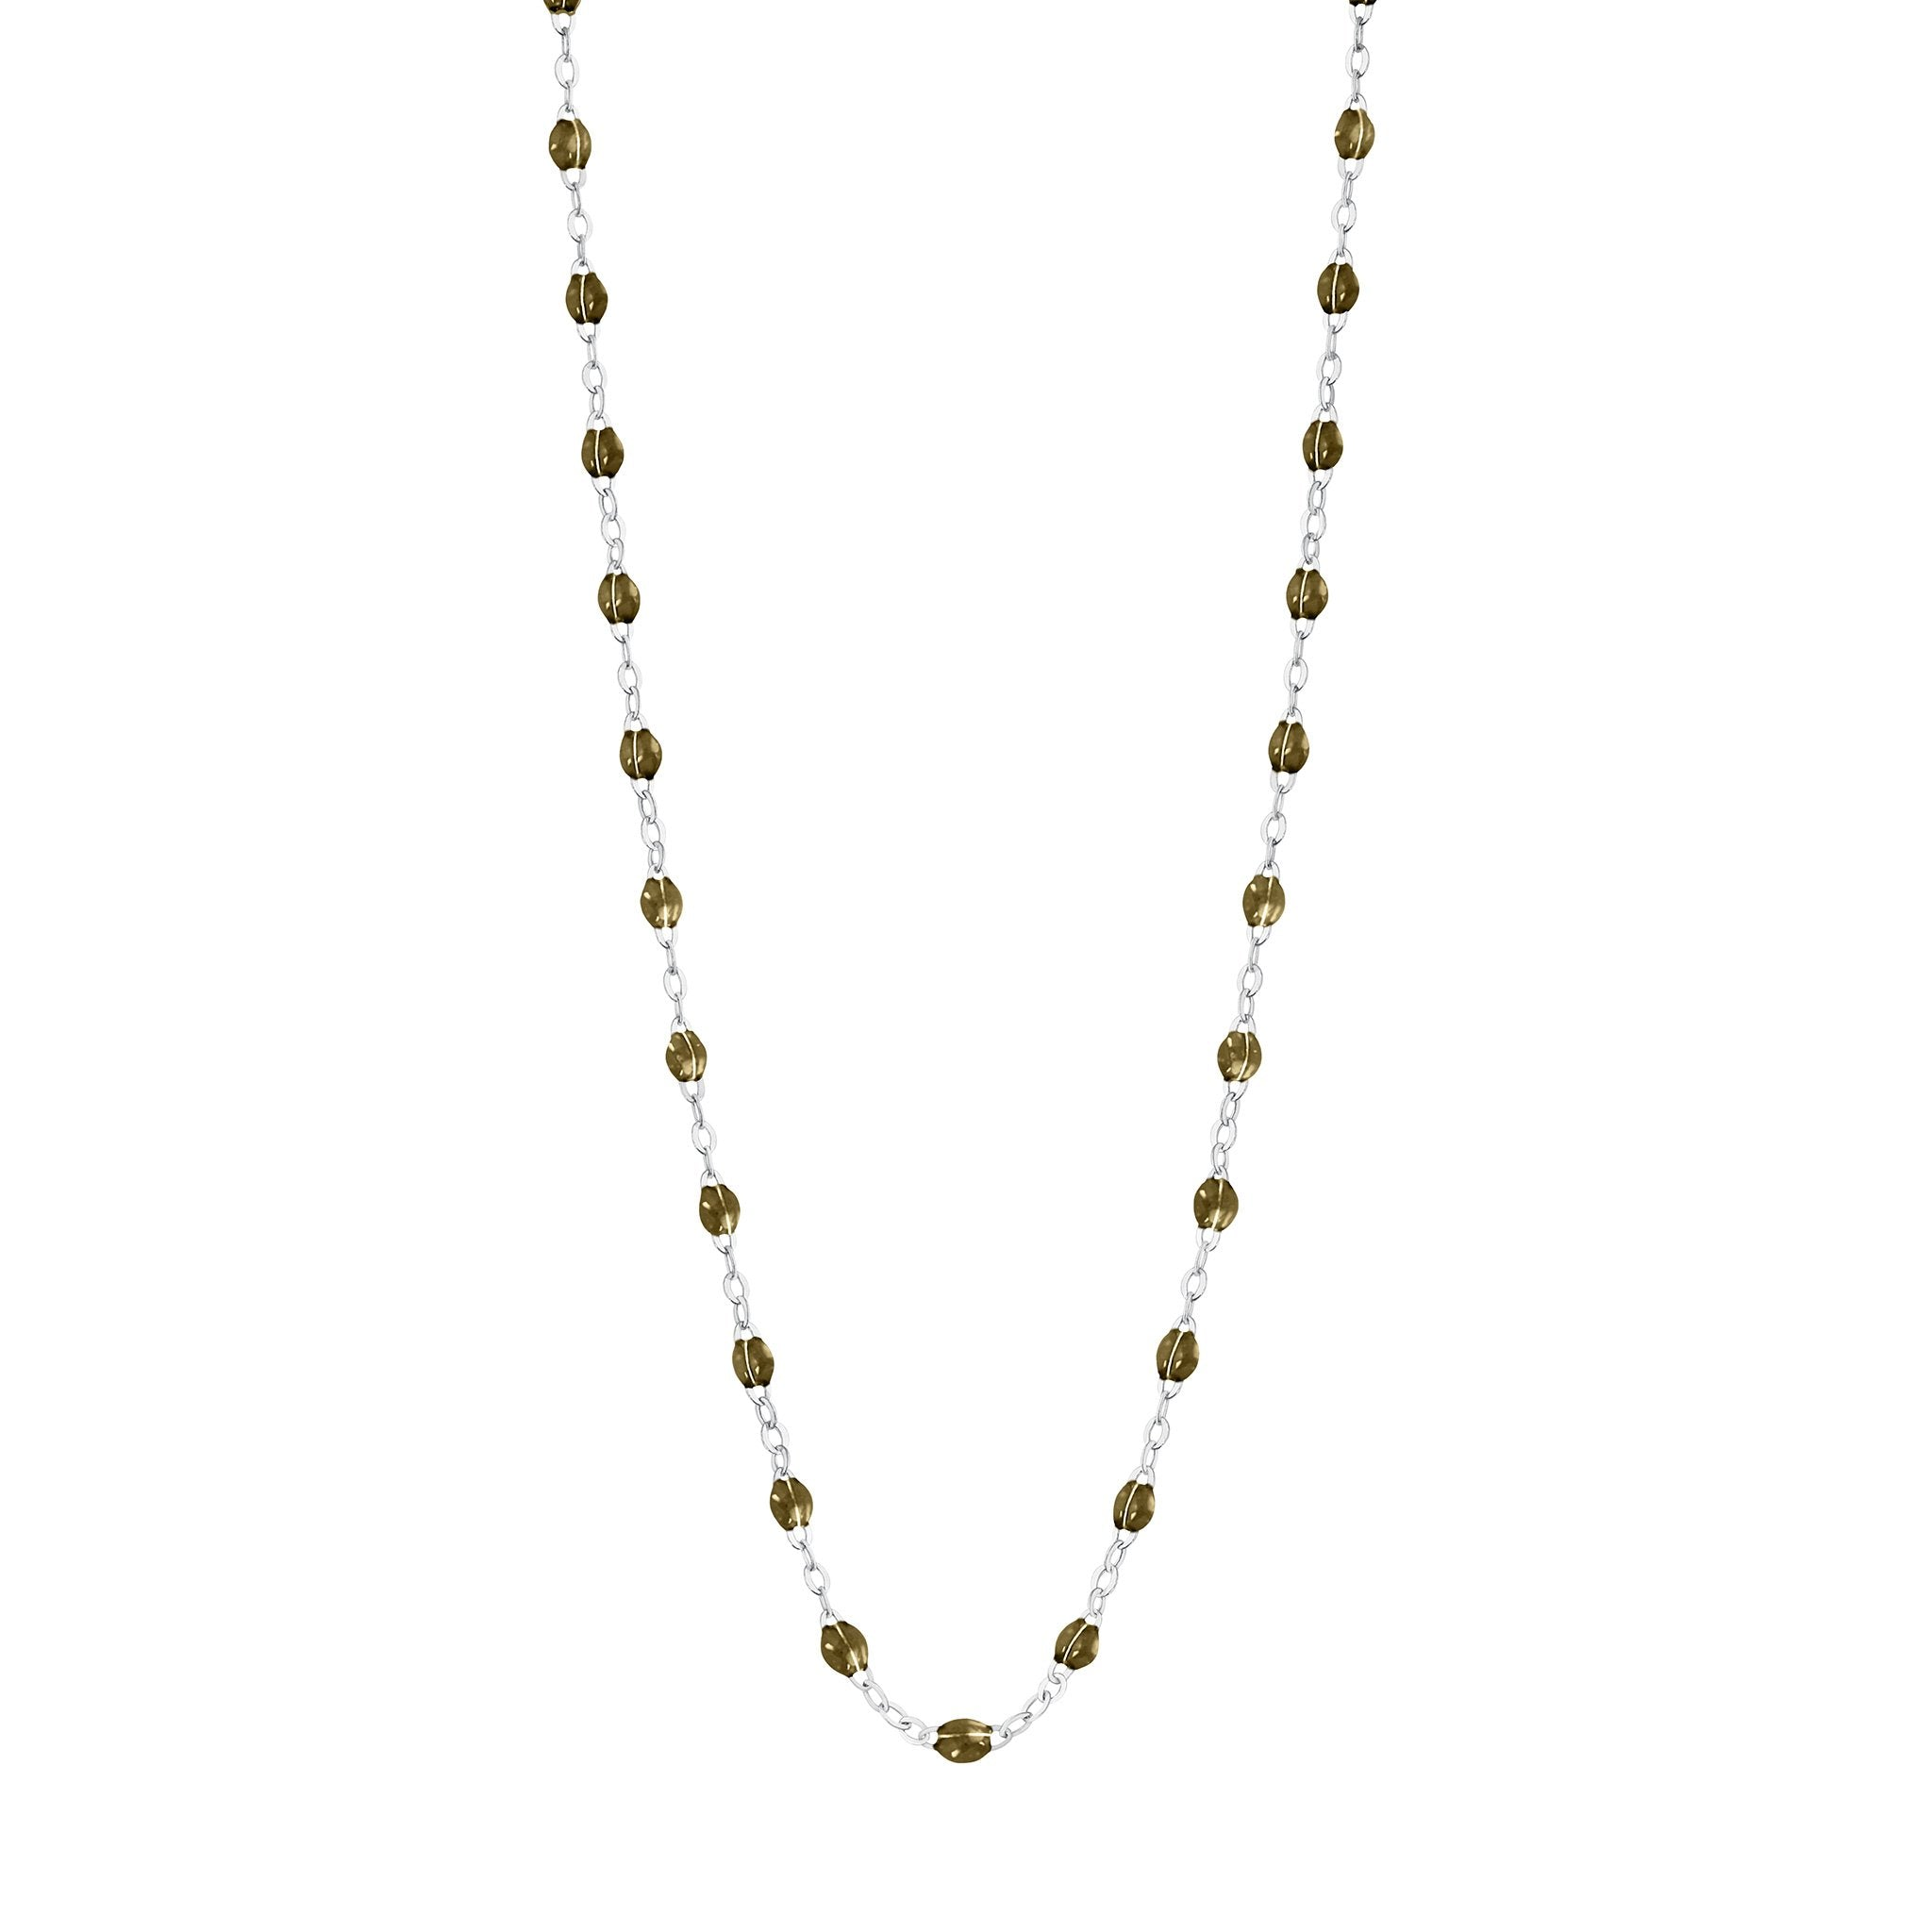 Gigi Clozeau - Classic Gigi Khaki necklace, White Gold, 16.5""